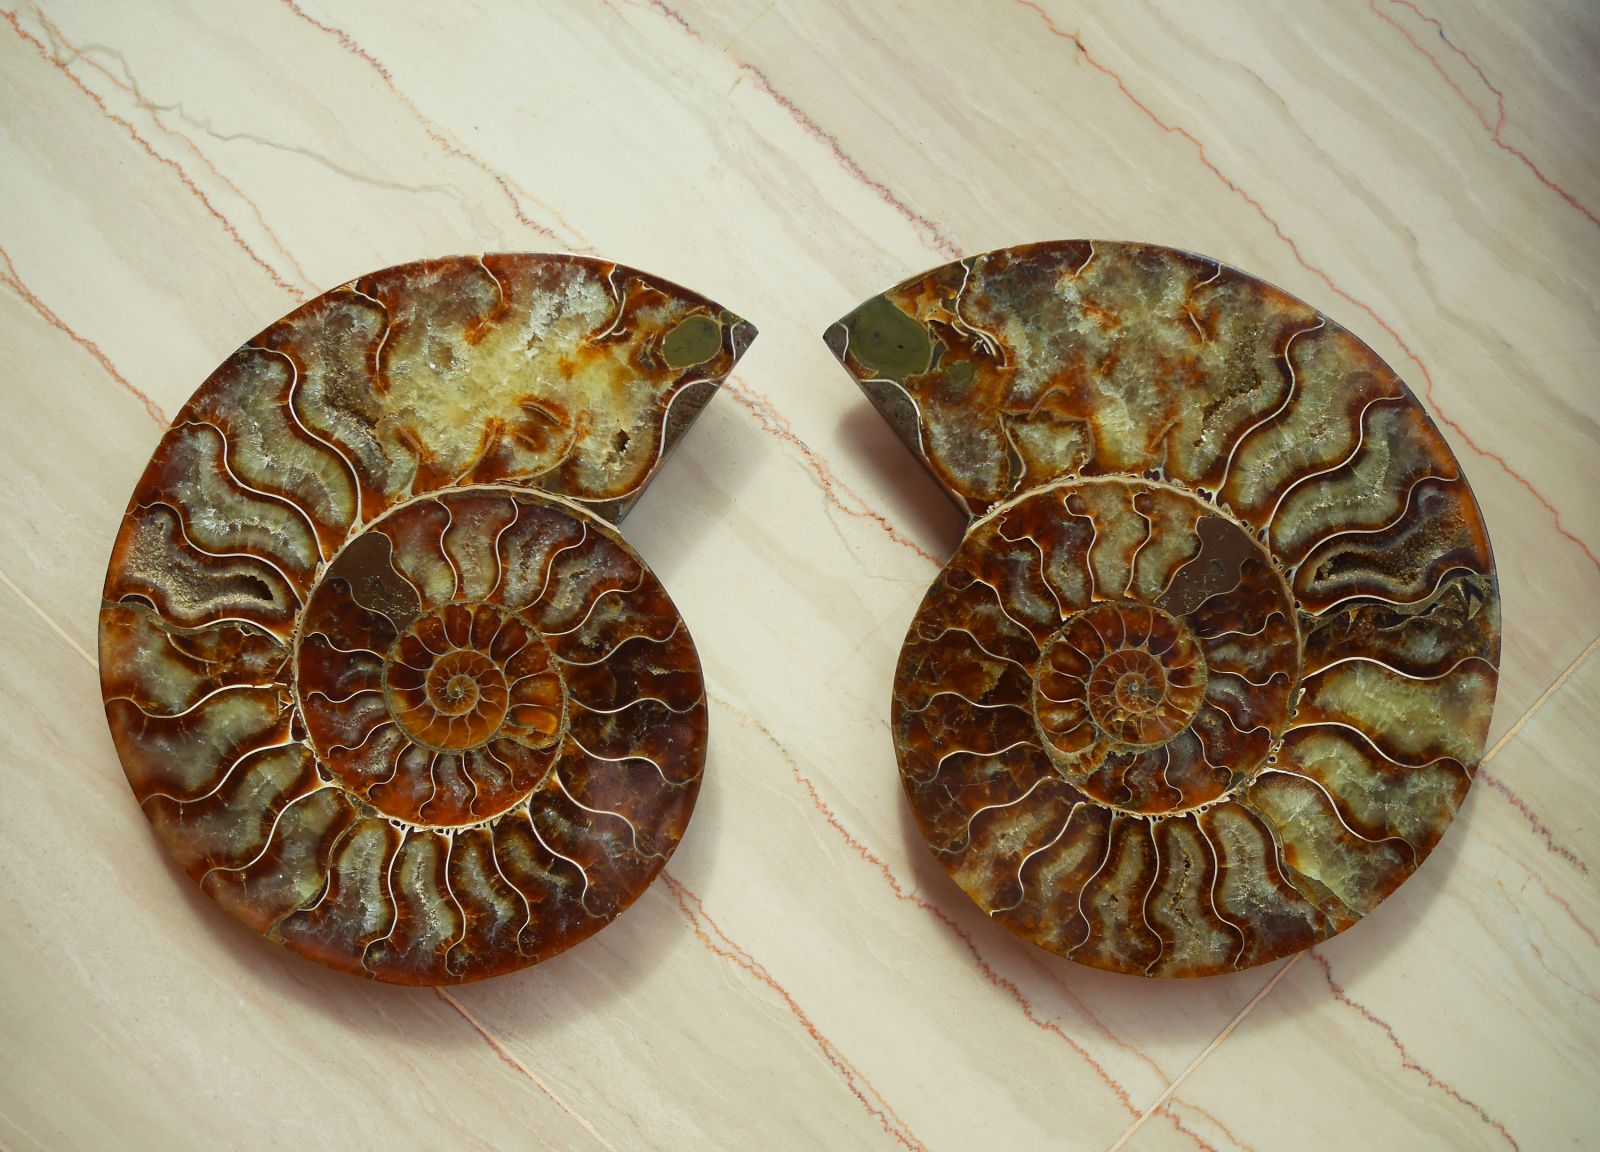 Sliced Ammonite with crystals